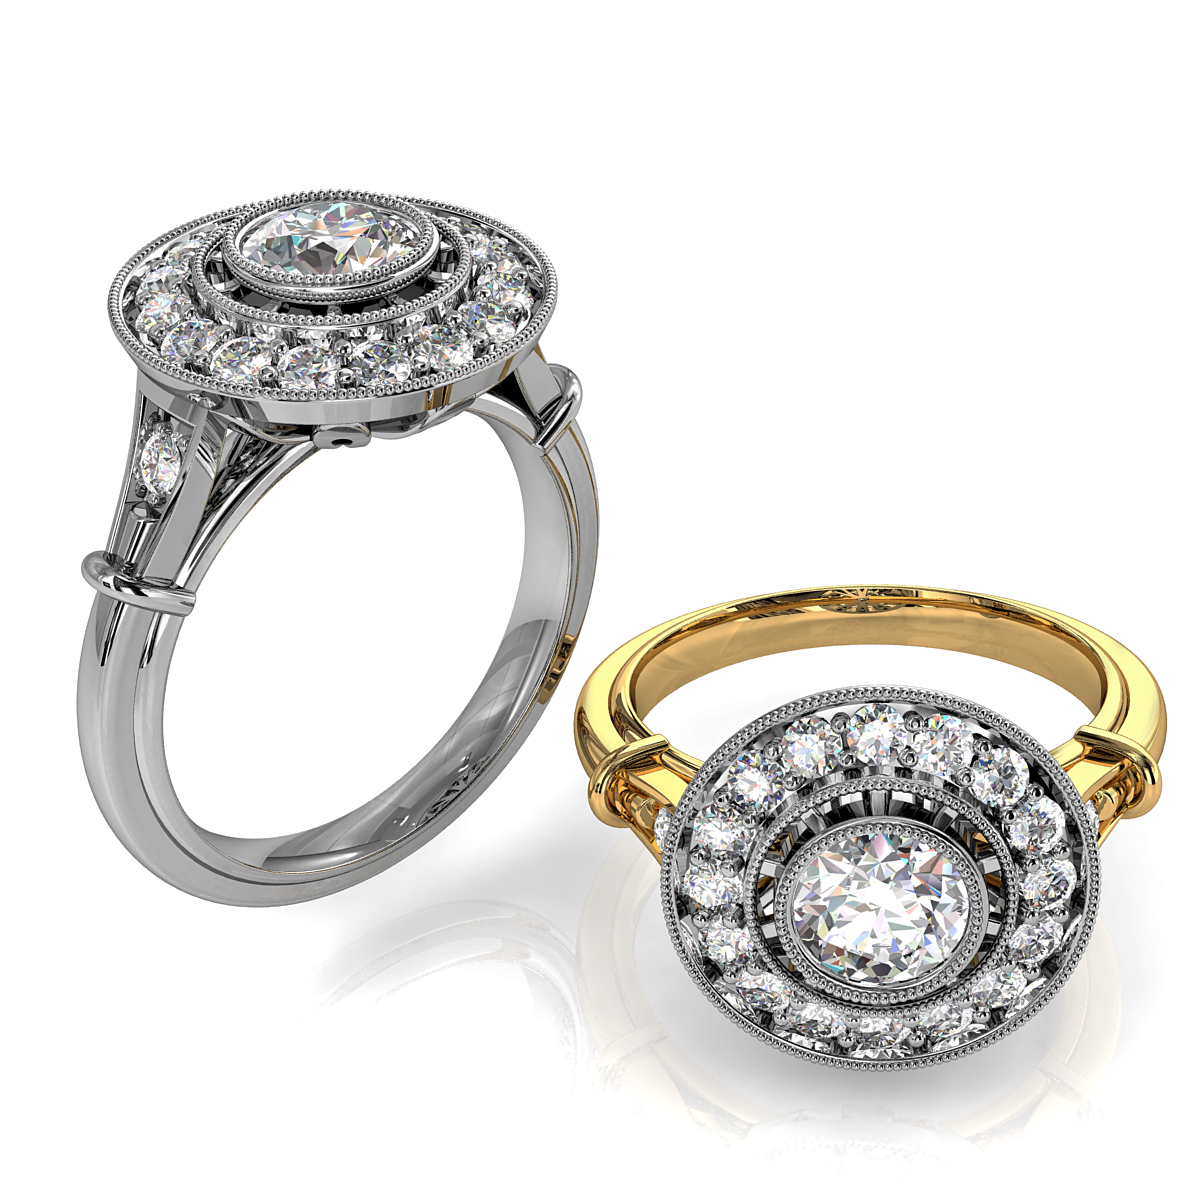 Round Brilliant Cut Diamond Halo Engagement Ring, Bezel Set in a Seperate Bead Set Halo on an Art Deco Band.